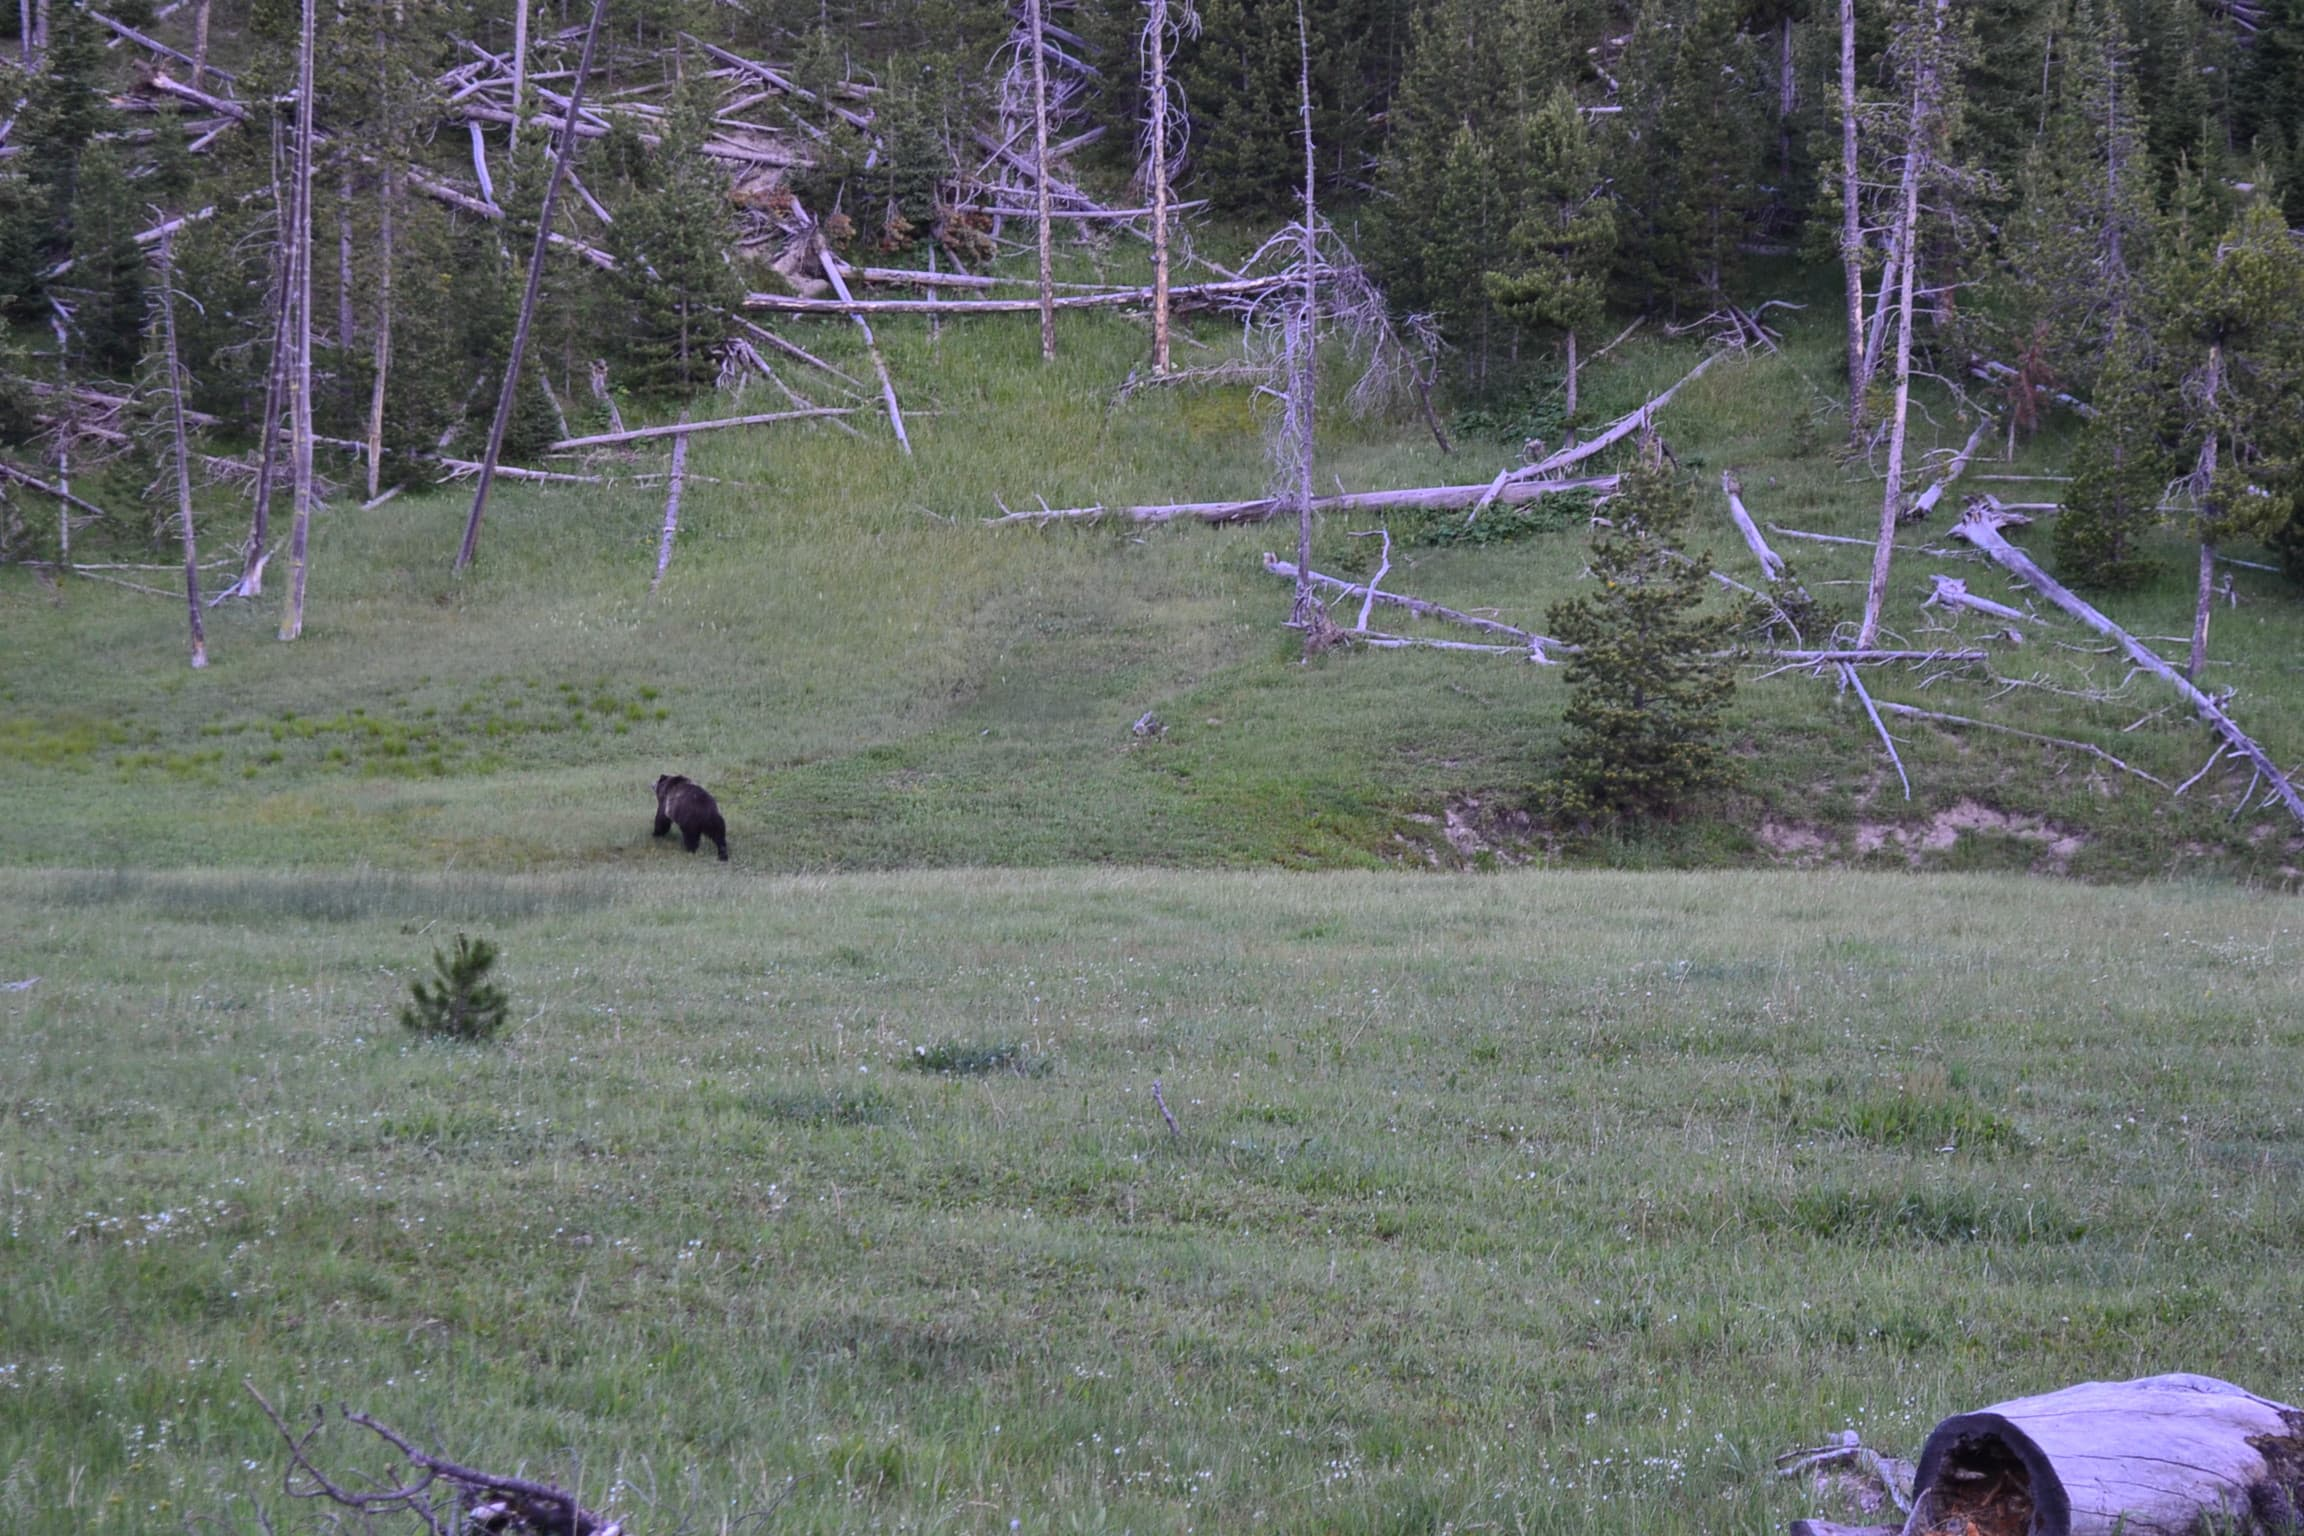 Grizzly heading for the hills Yellowstone park.